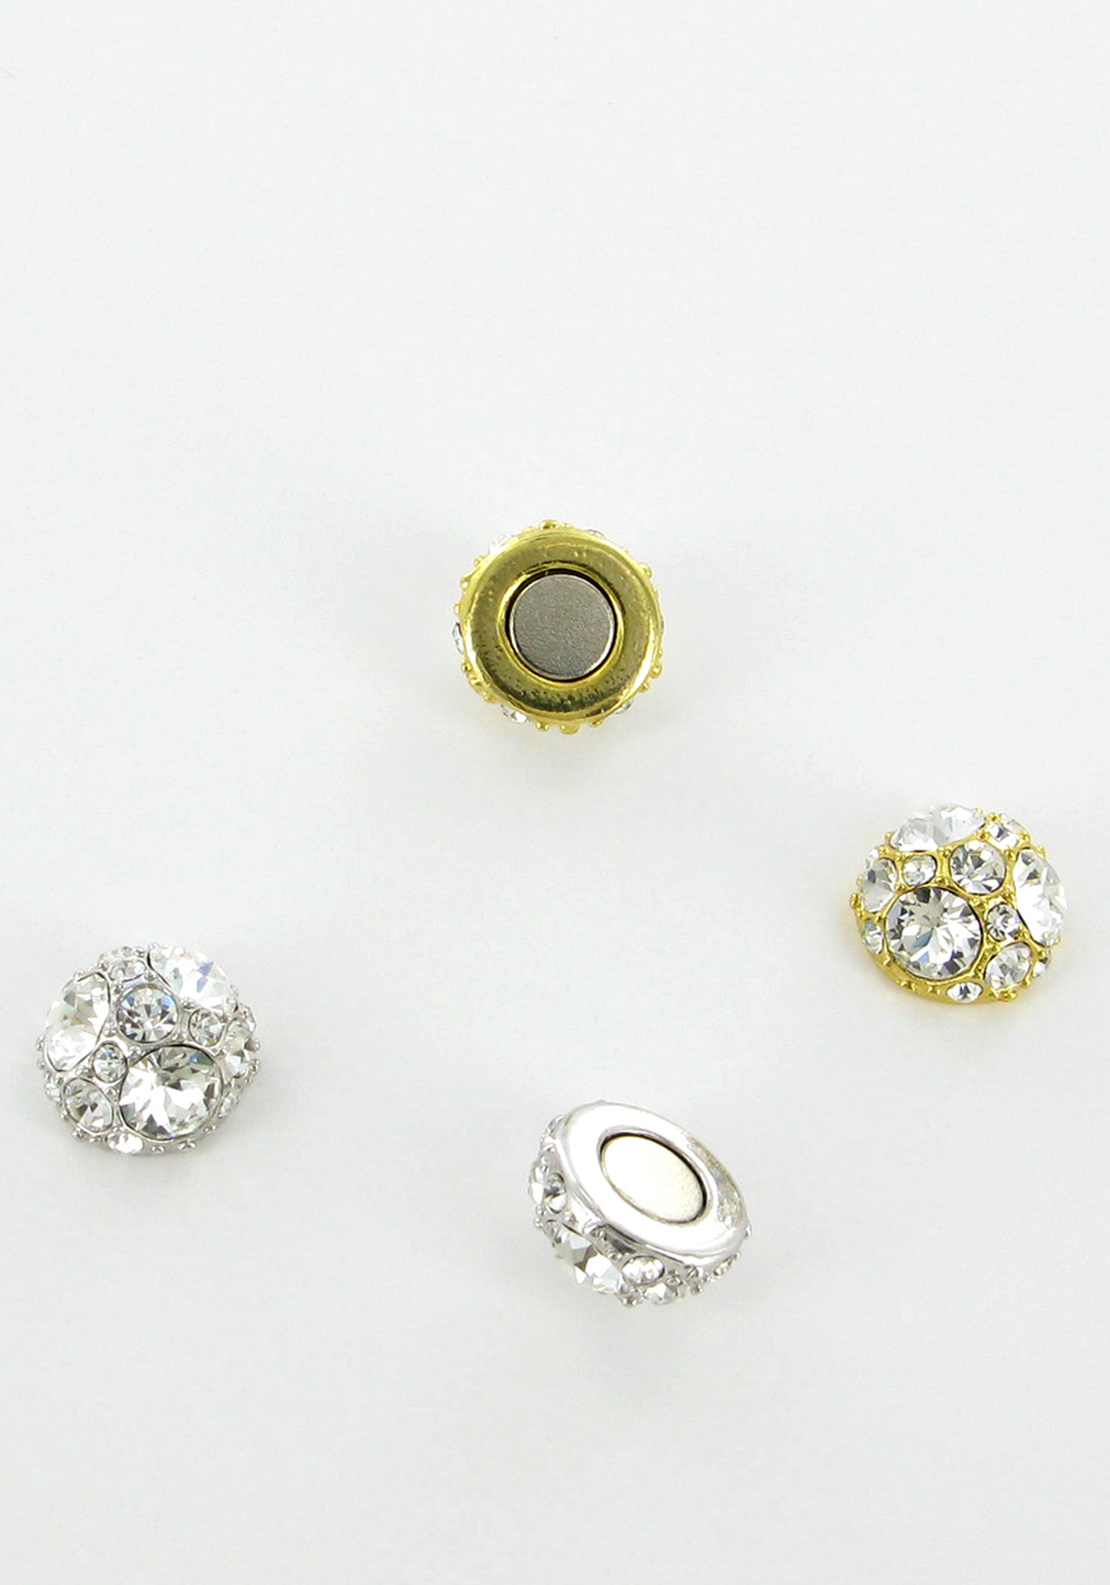 Nour London Round Magnetic Crystal Embellished Stud Earrings, Silver & Gold